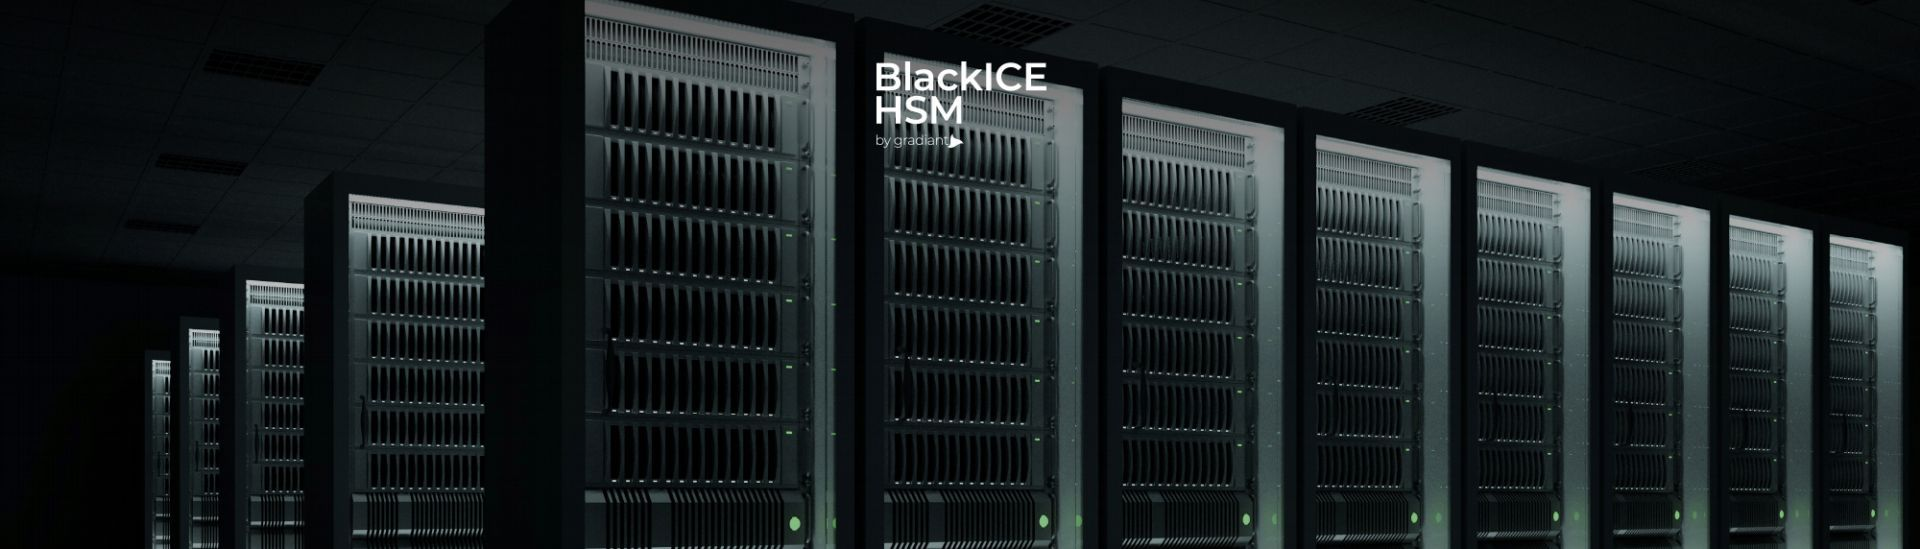 black-ice-hsm_slider-gradiant